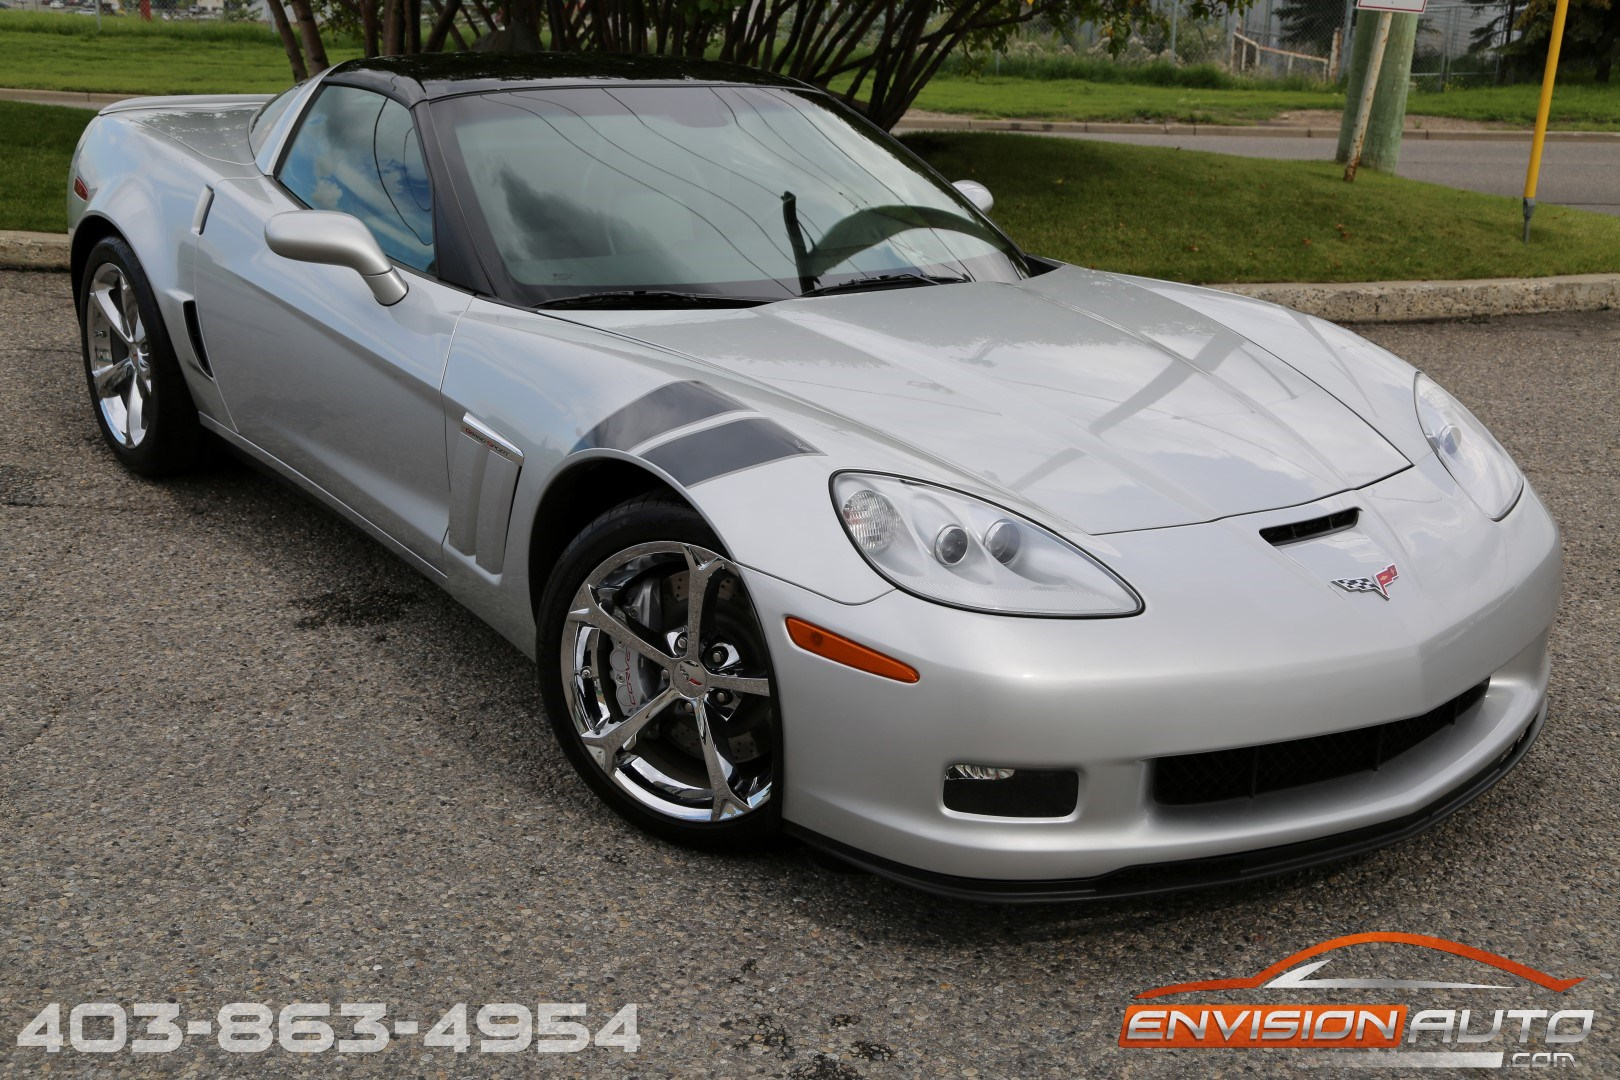 2010 Chevrolet Corvette Grand Sport Coupe 3lt Envision